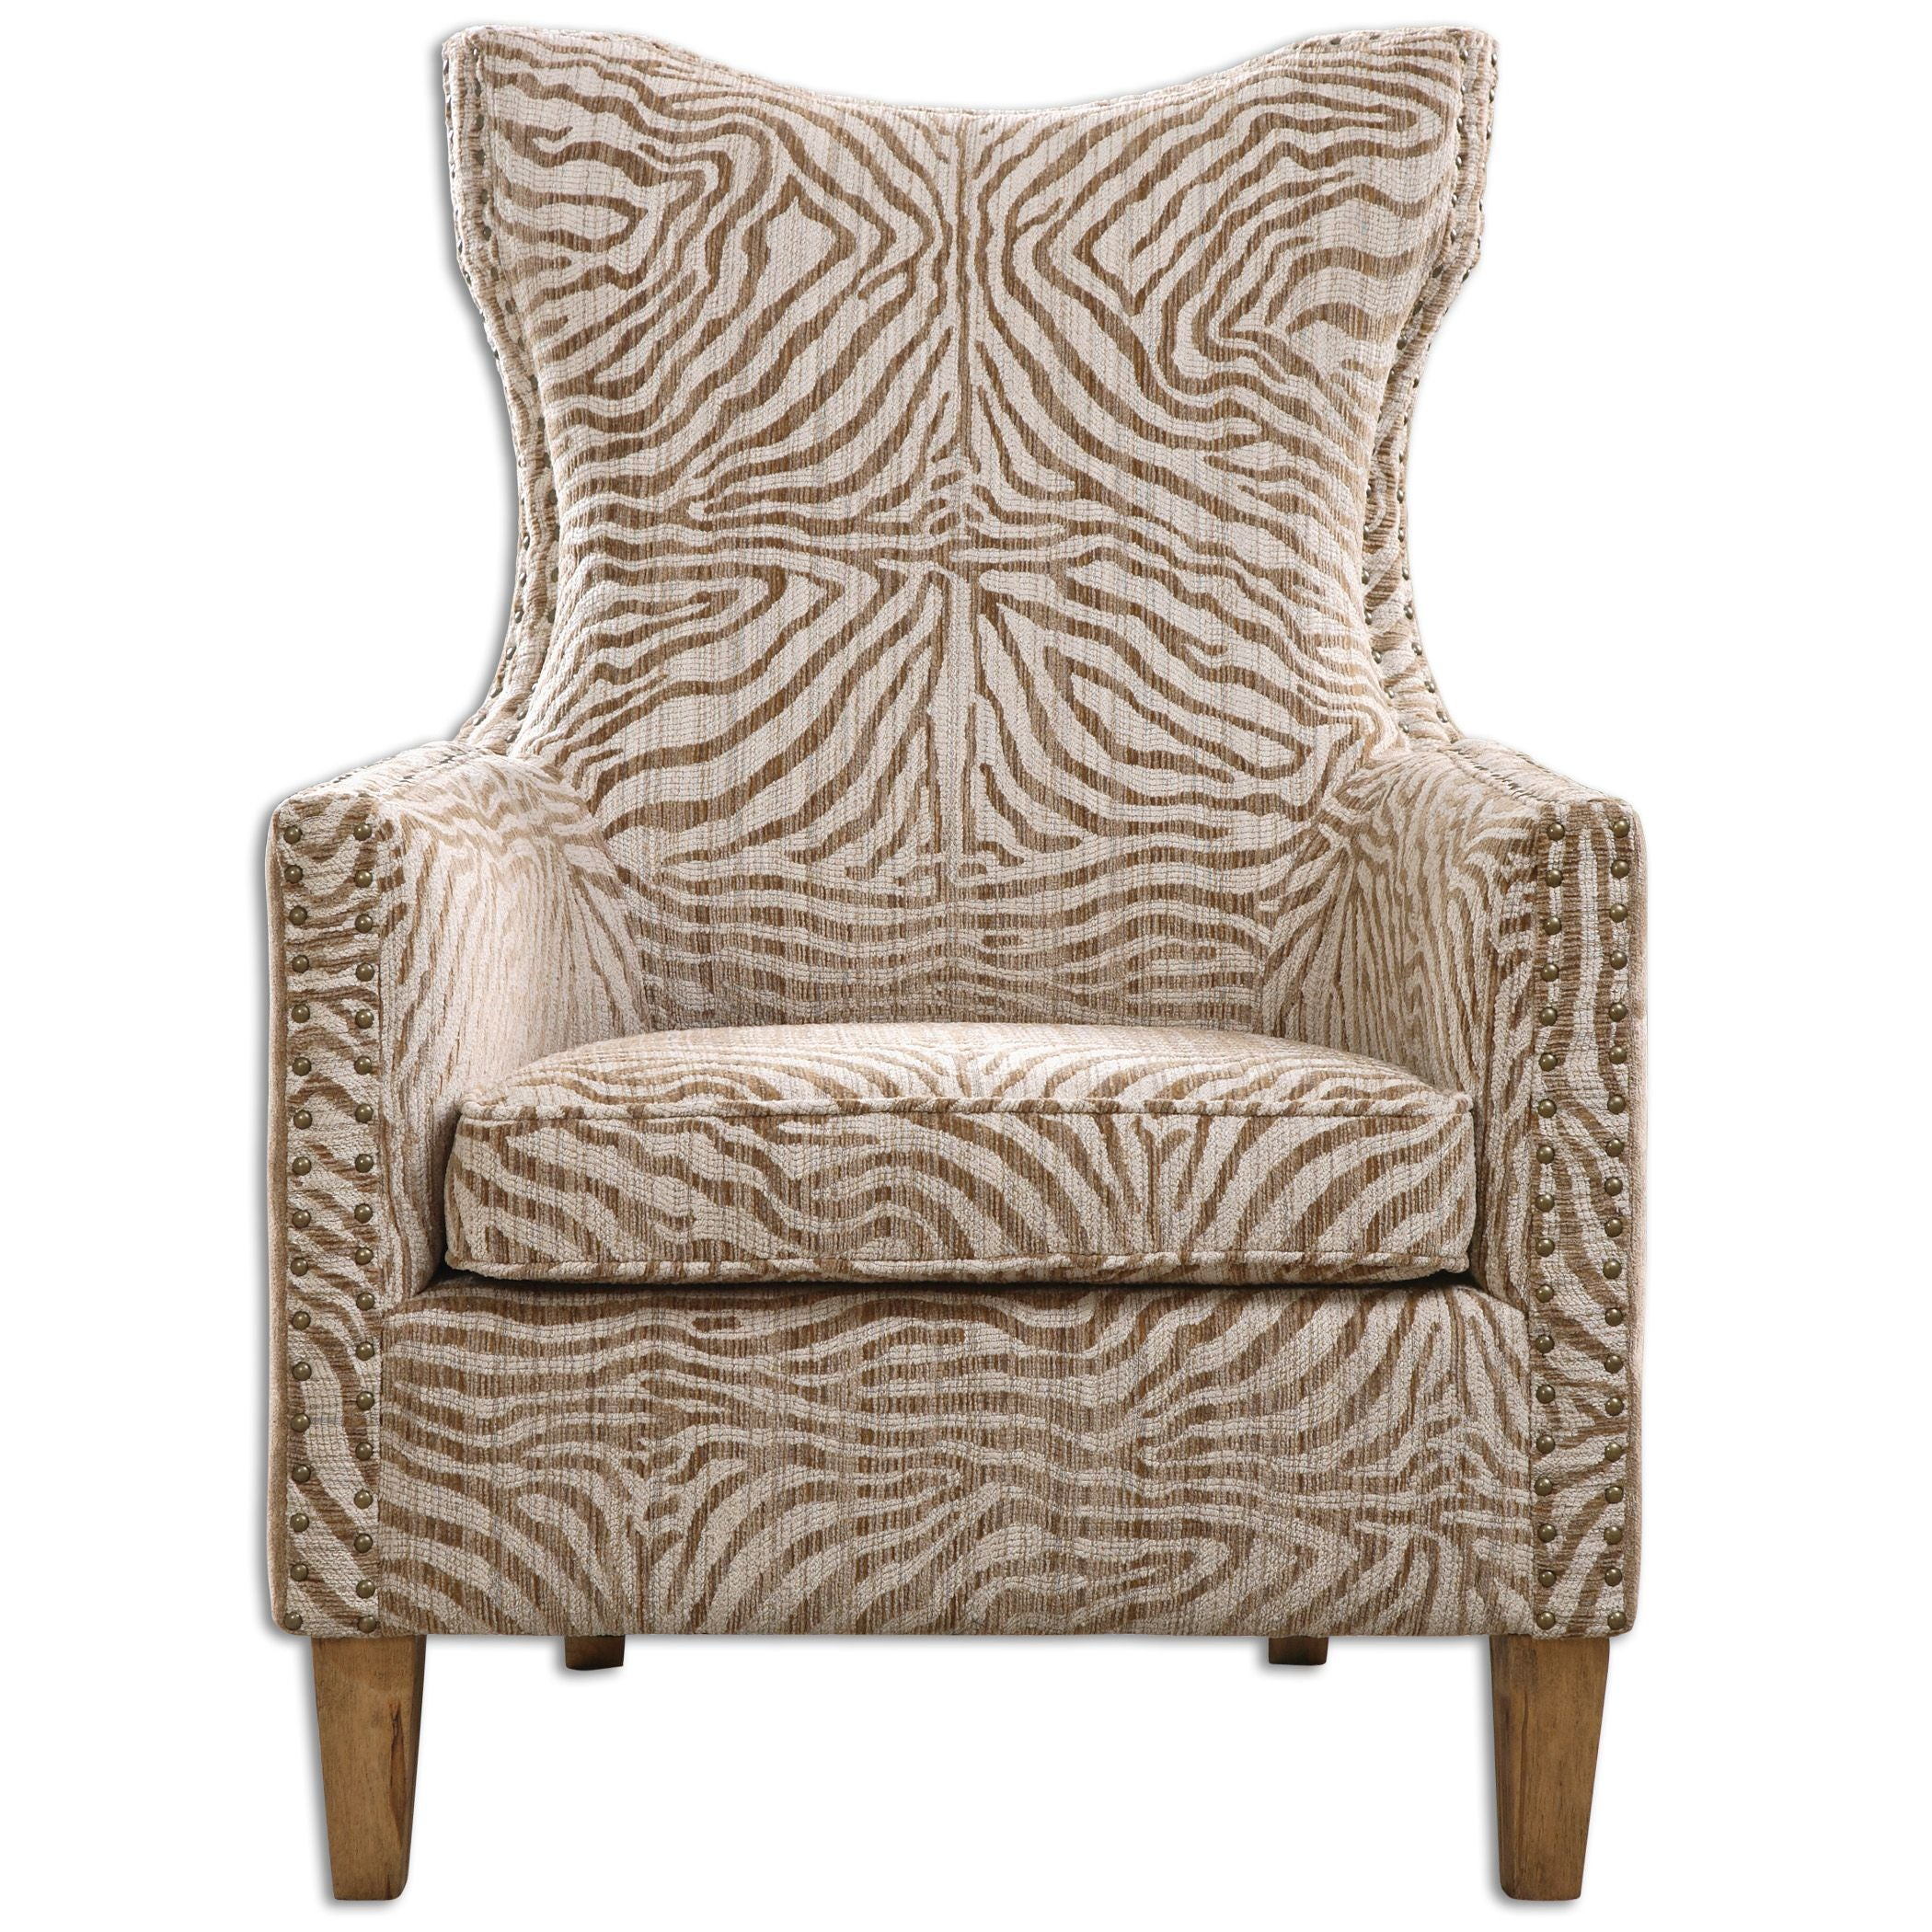 Kiango Animal Print Accent Chair Innovations Designer Home Decor